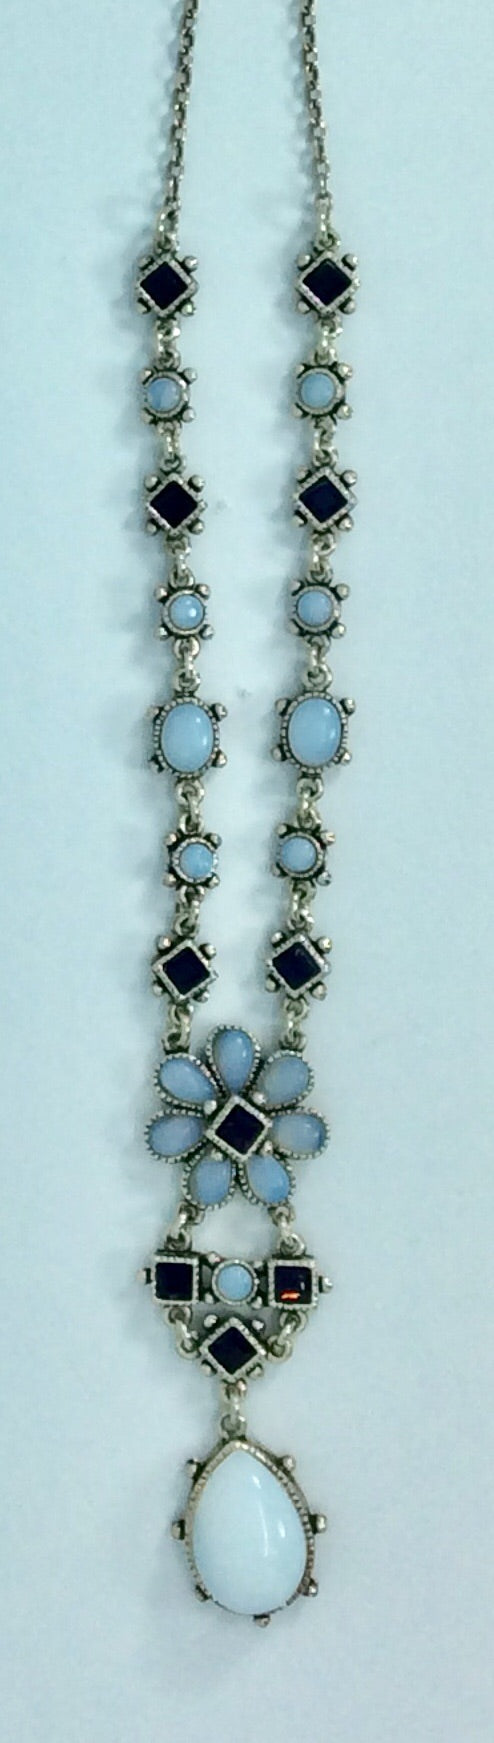 Feminine design with pale blue and amber stones made in France